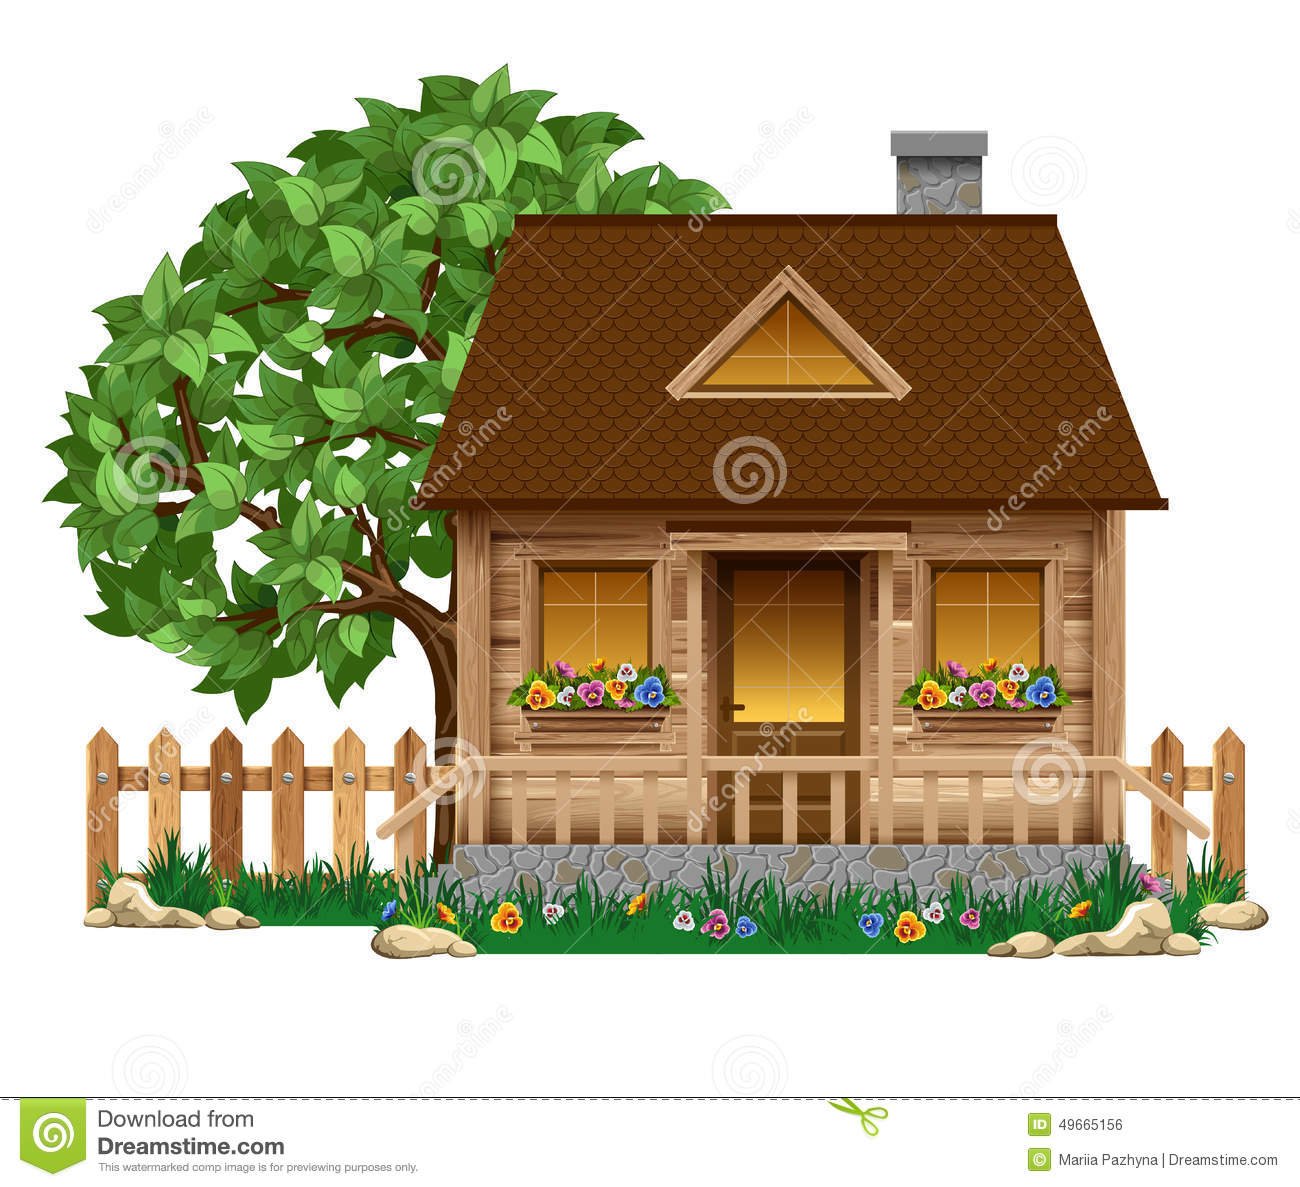 Wooden House Stock Illustrations 134 603 Wooden House Stock Illustrations Vectors Clipart Dreamstime